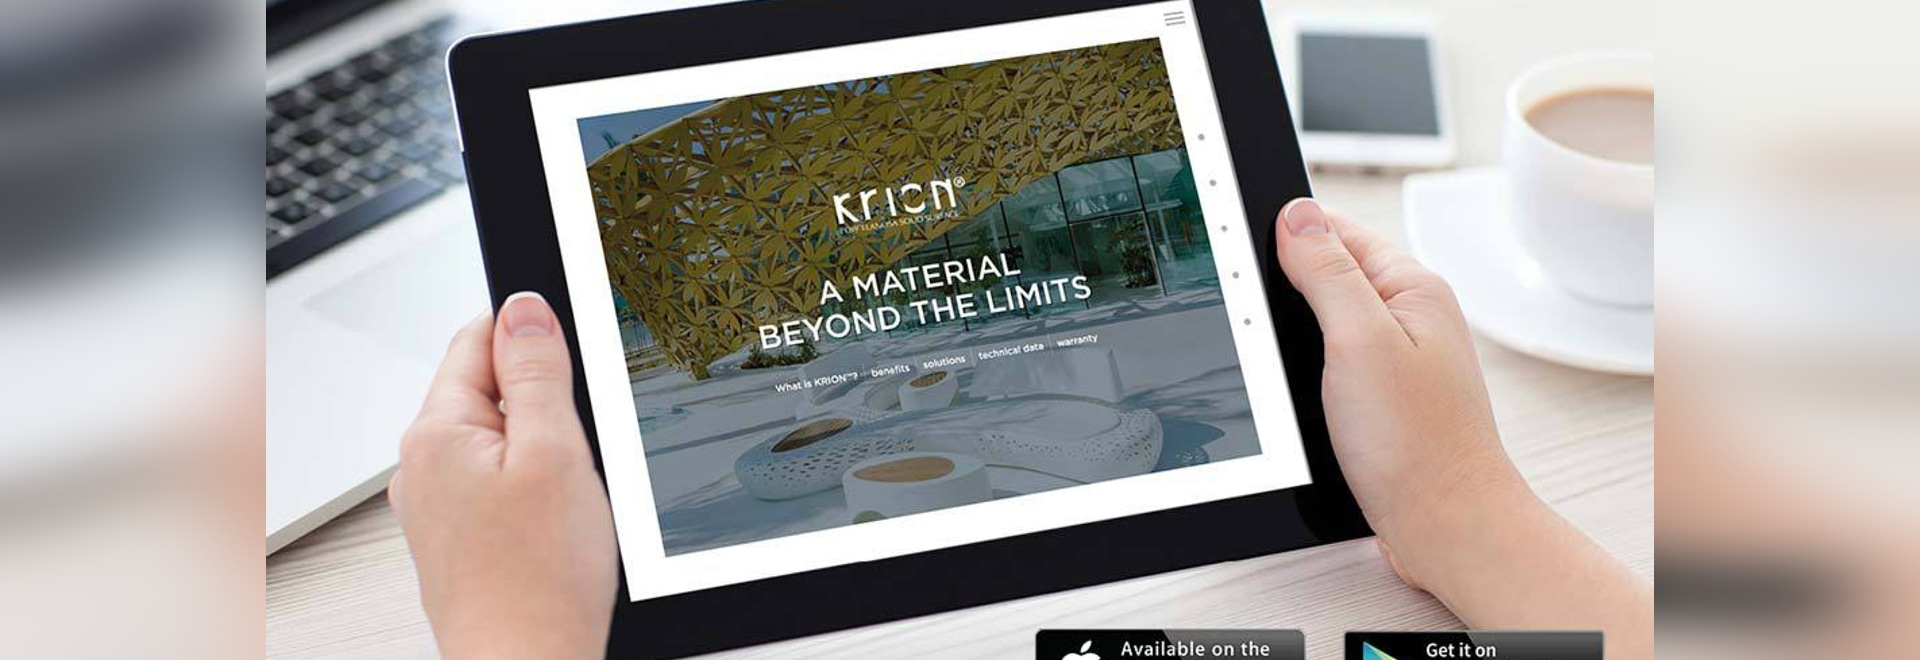 New version of the KRION application for iPad (IOS) and Tablet (Android)